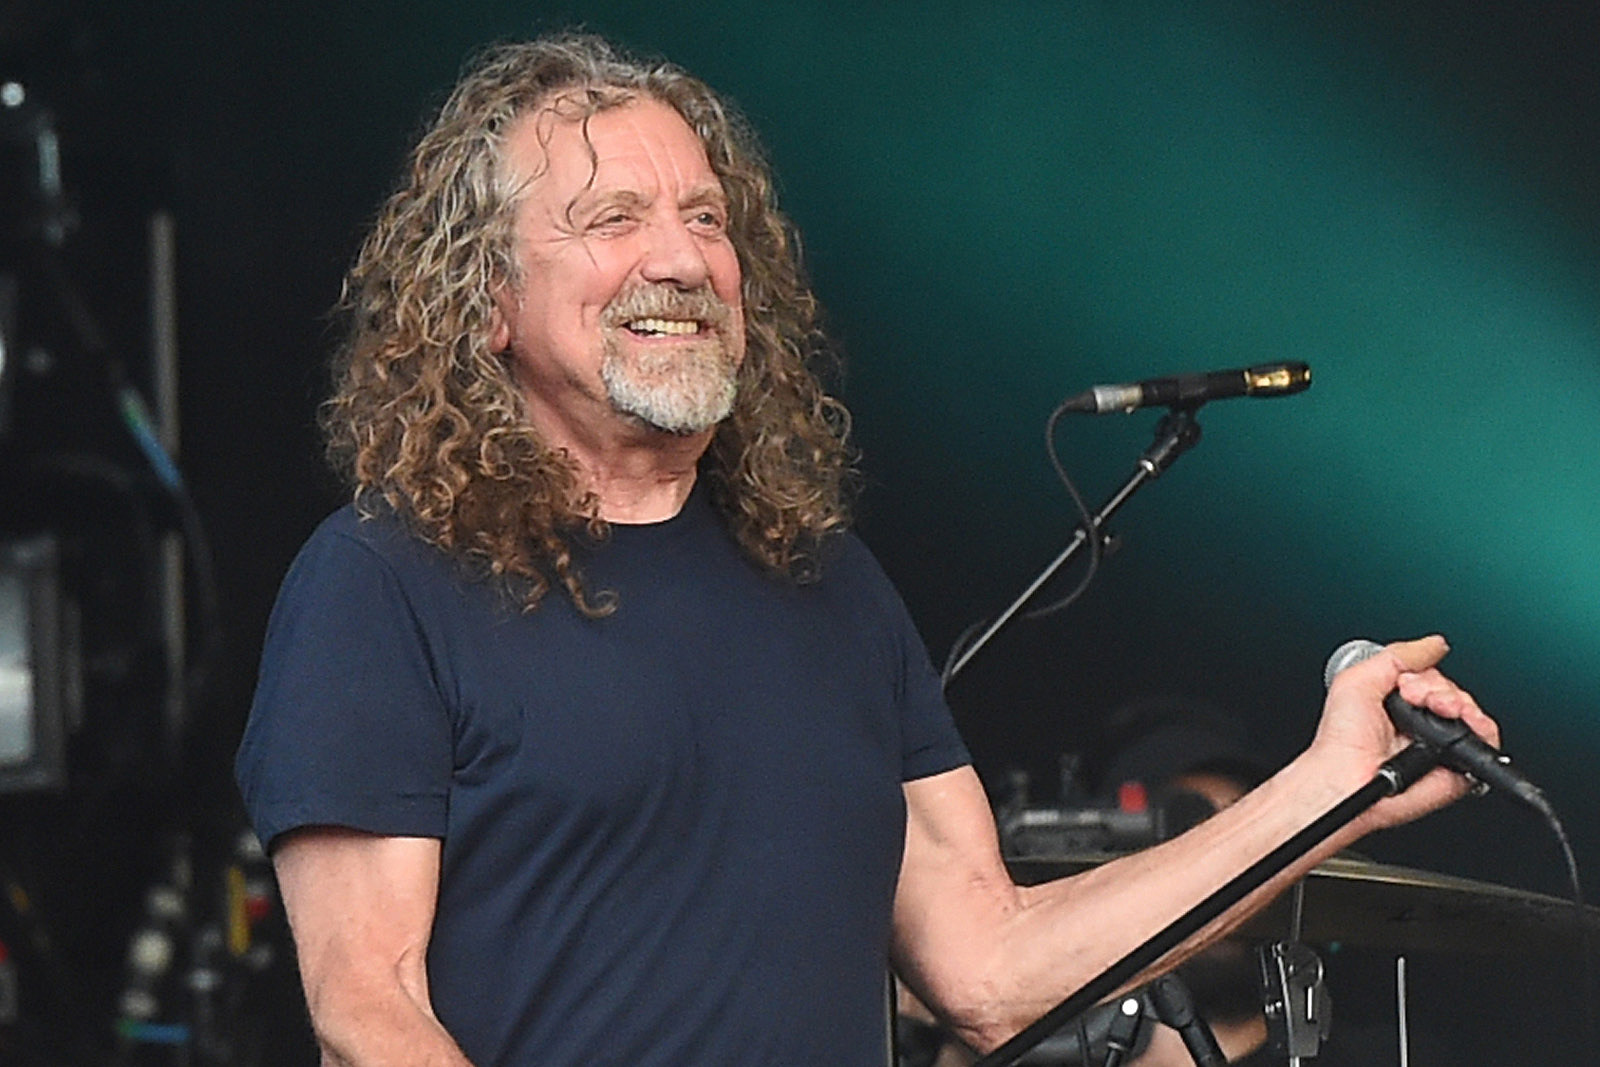 Watch Robert Plant Perform With His New Band Saving Grace